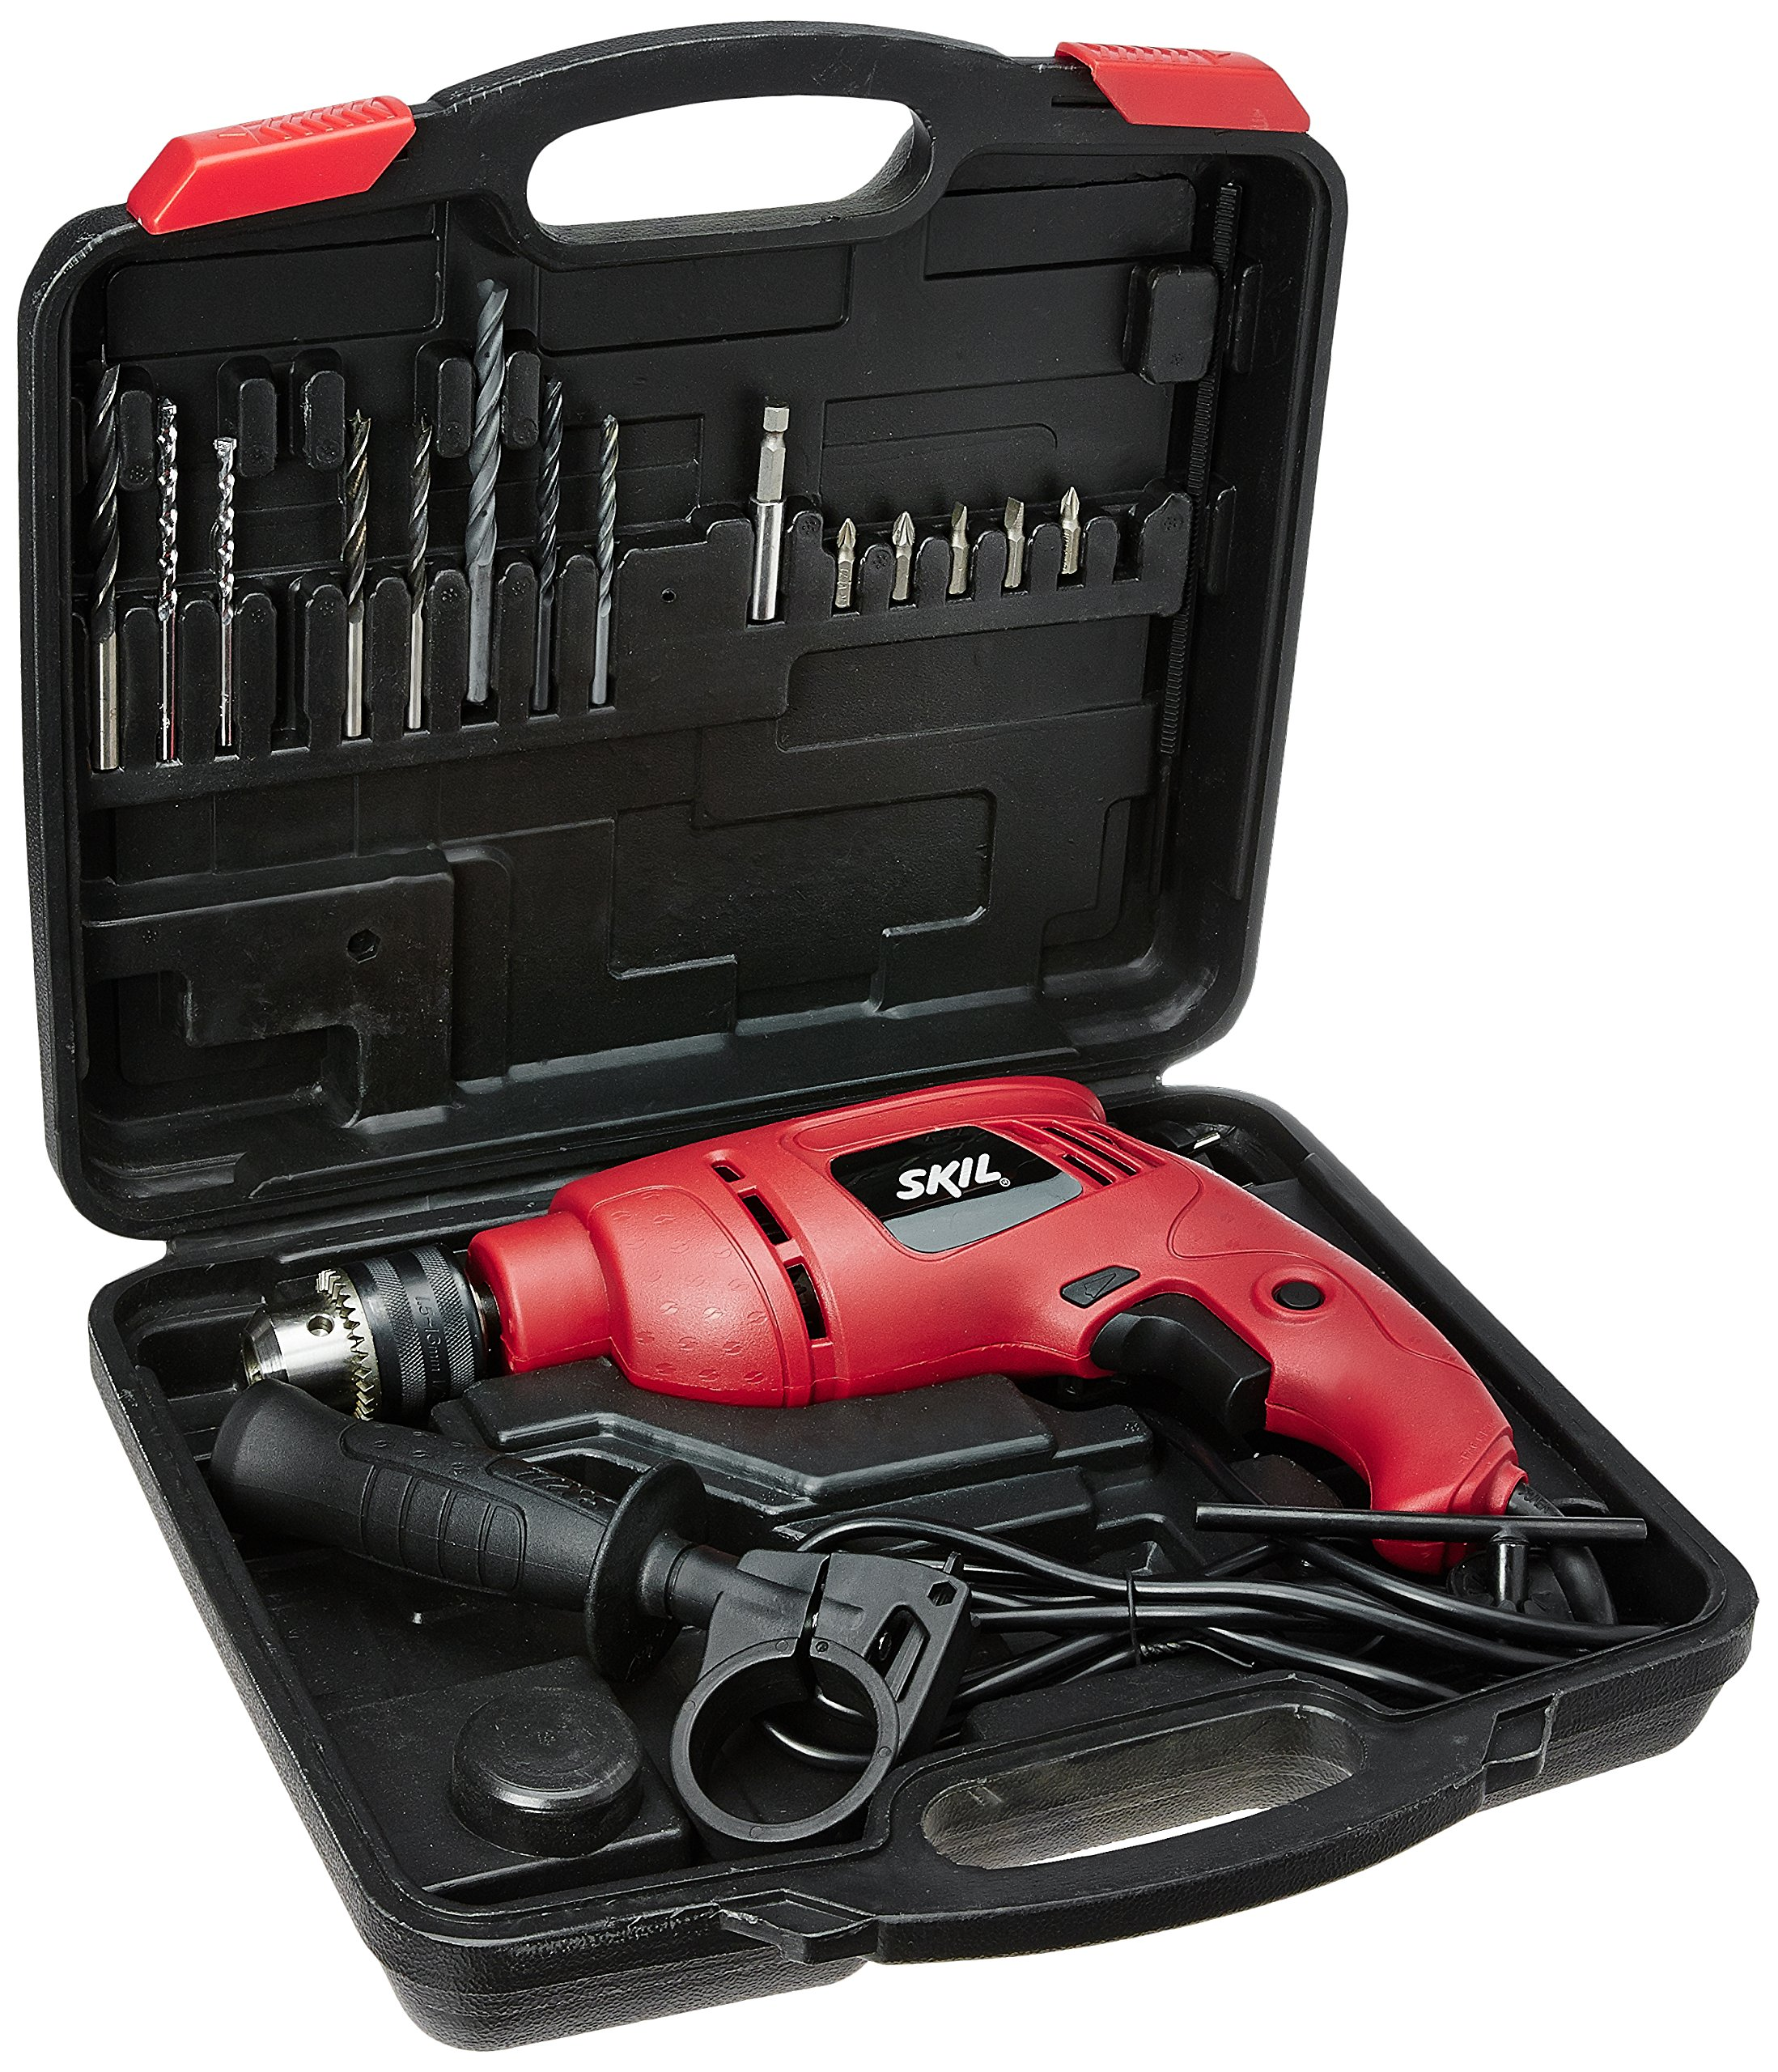 Skil 6513 JD 13mm Drill Kit with 15-Pieces Drill Bits product image